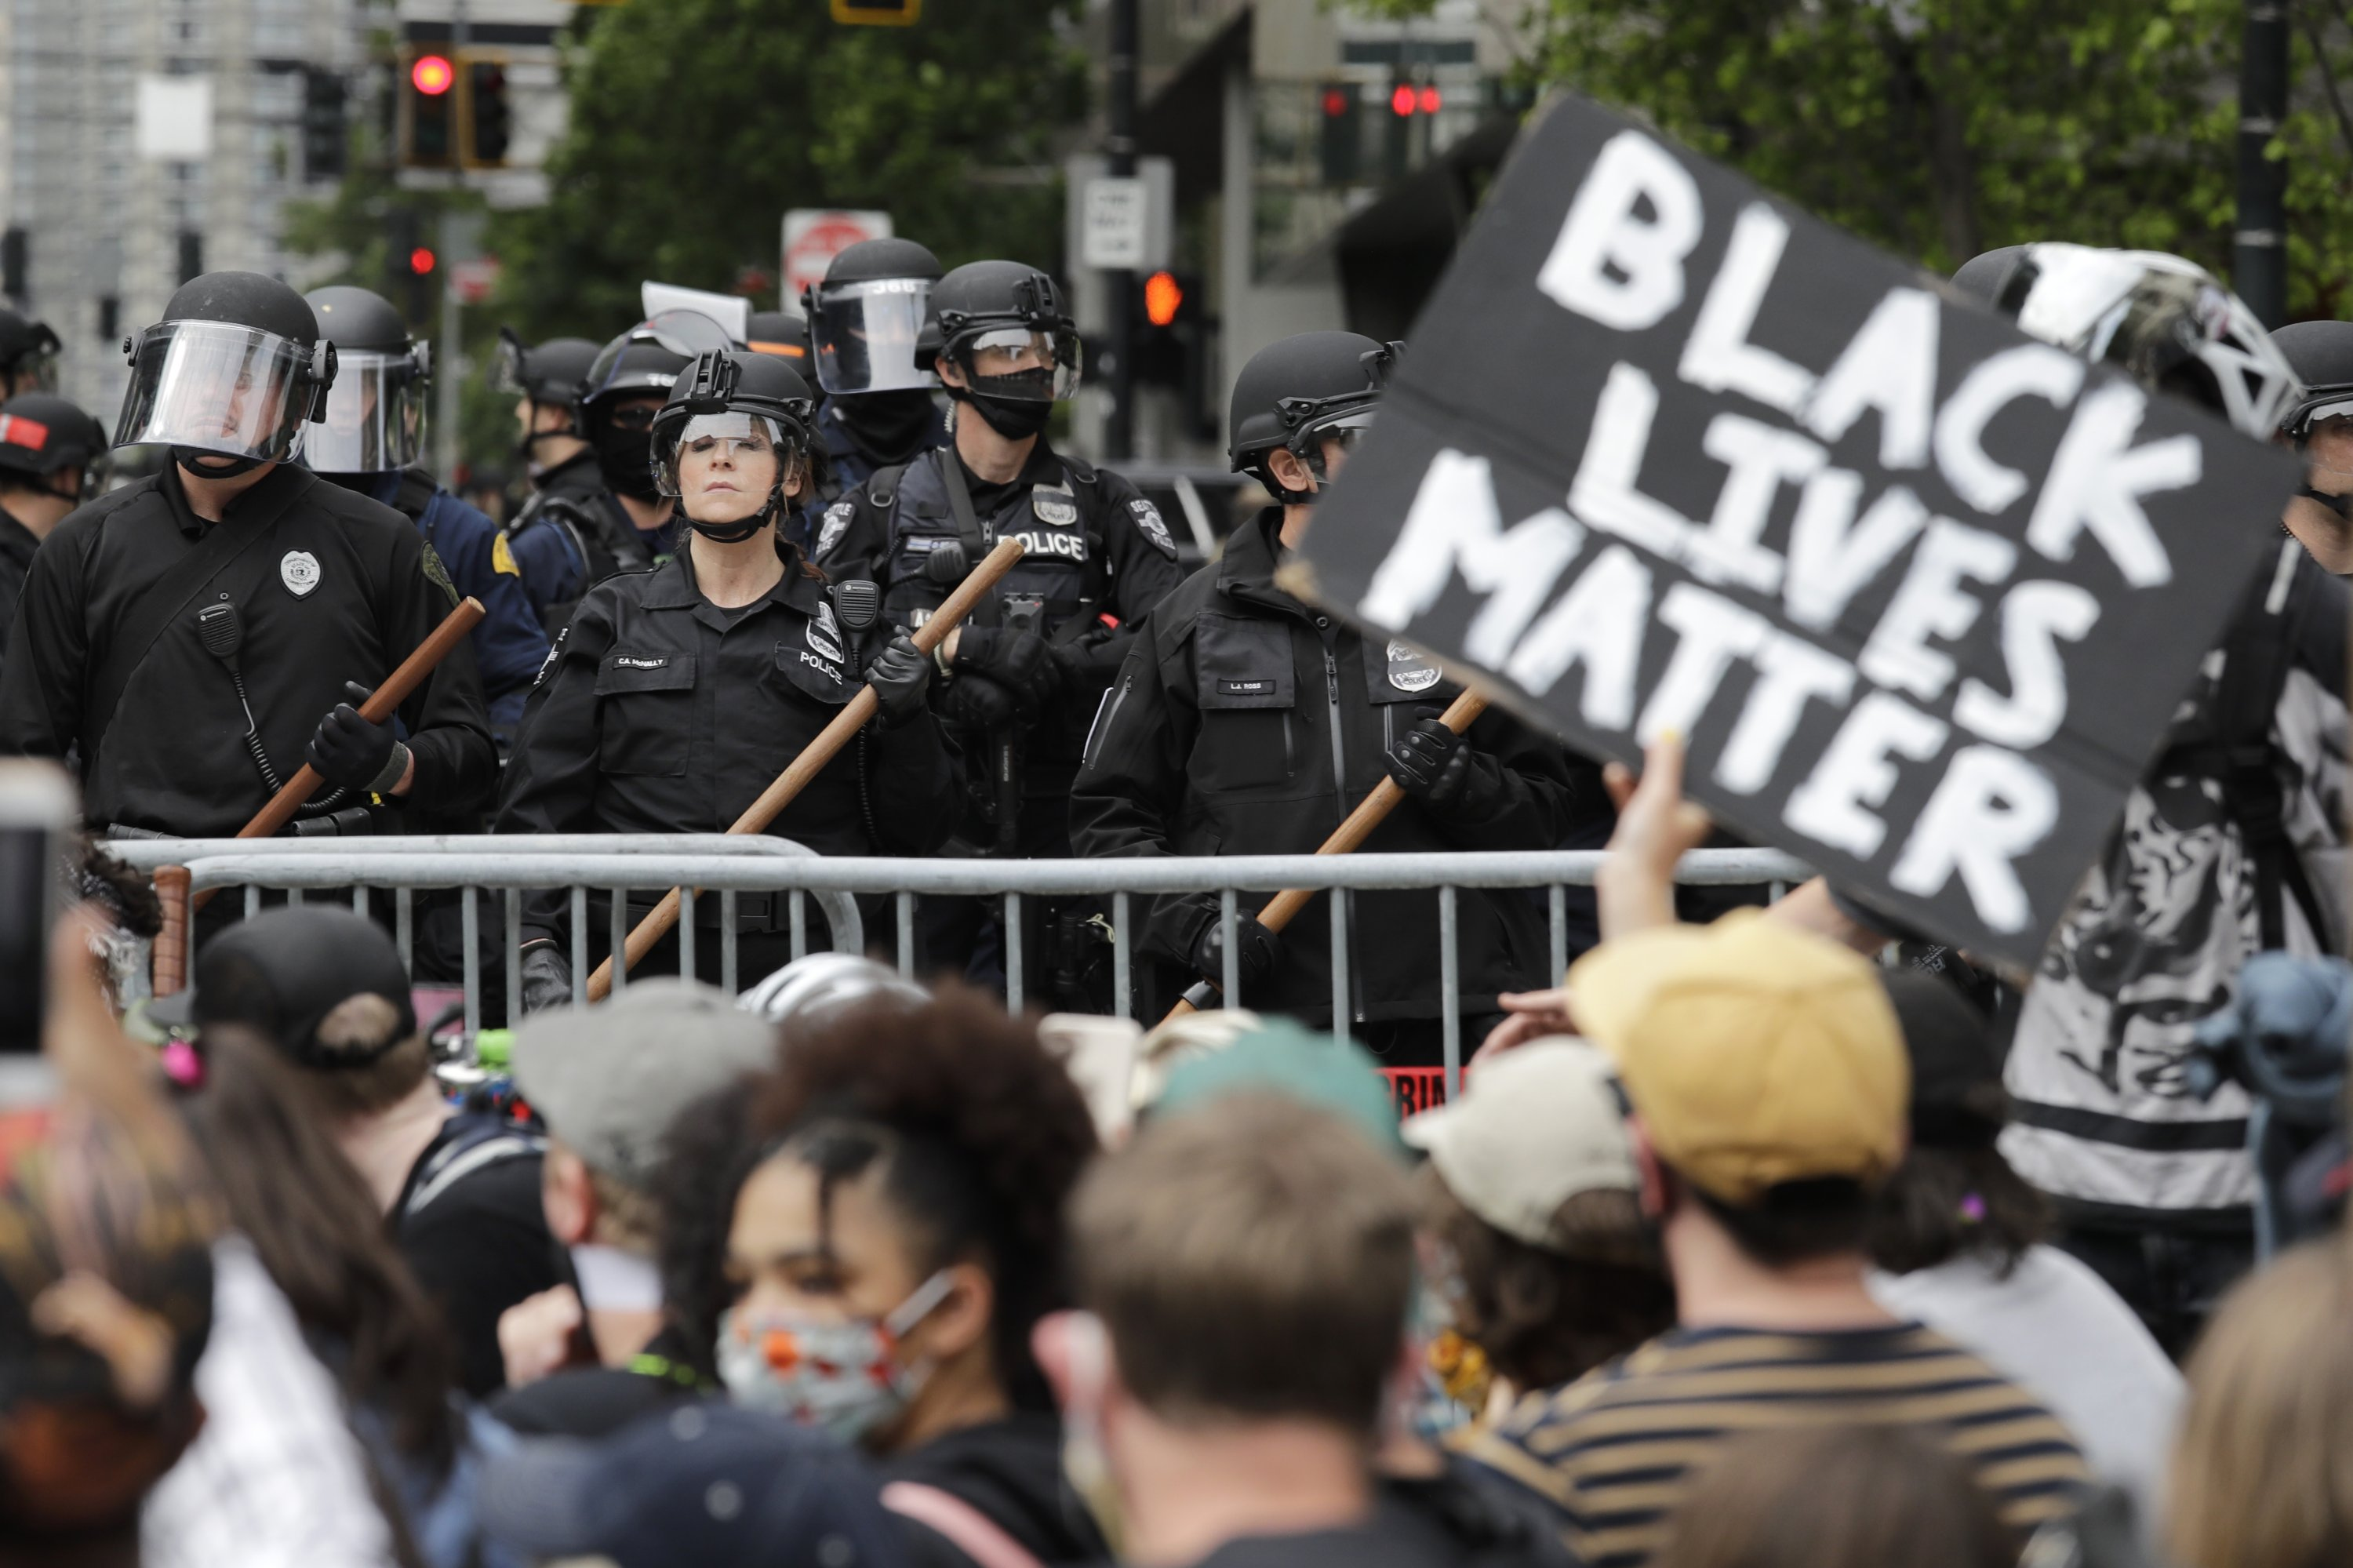 Protests in Seattle over the killing of Floyd were among Washington state's top stories for 2020. (AP Photo)